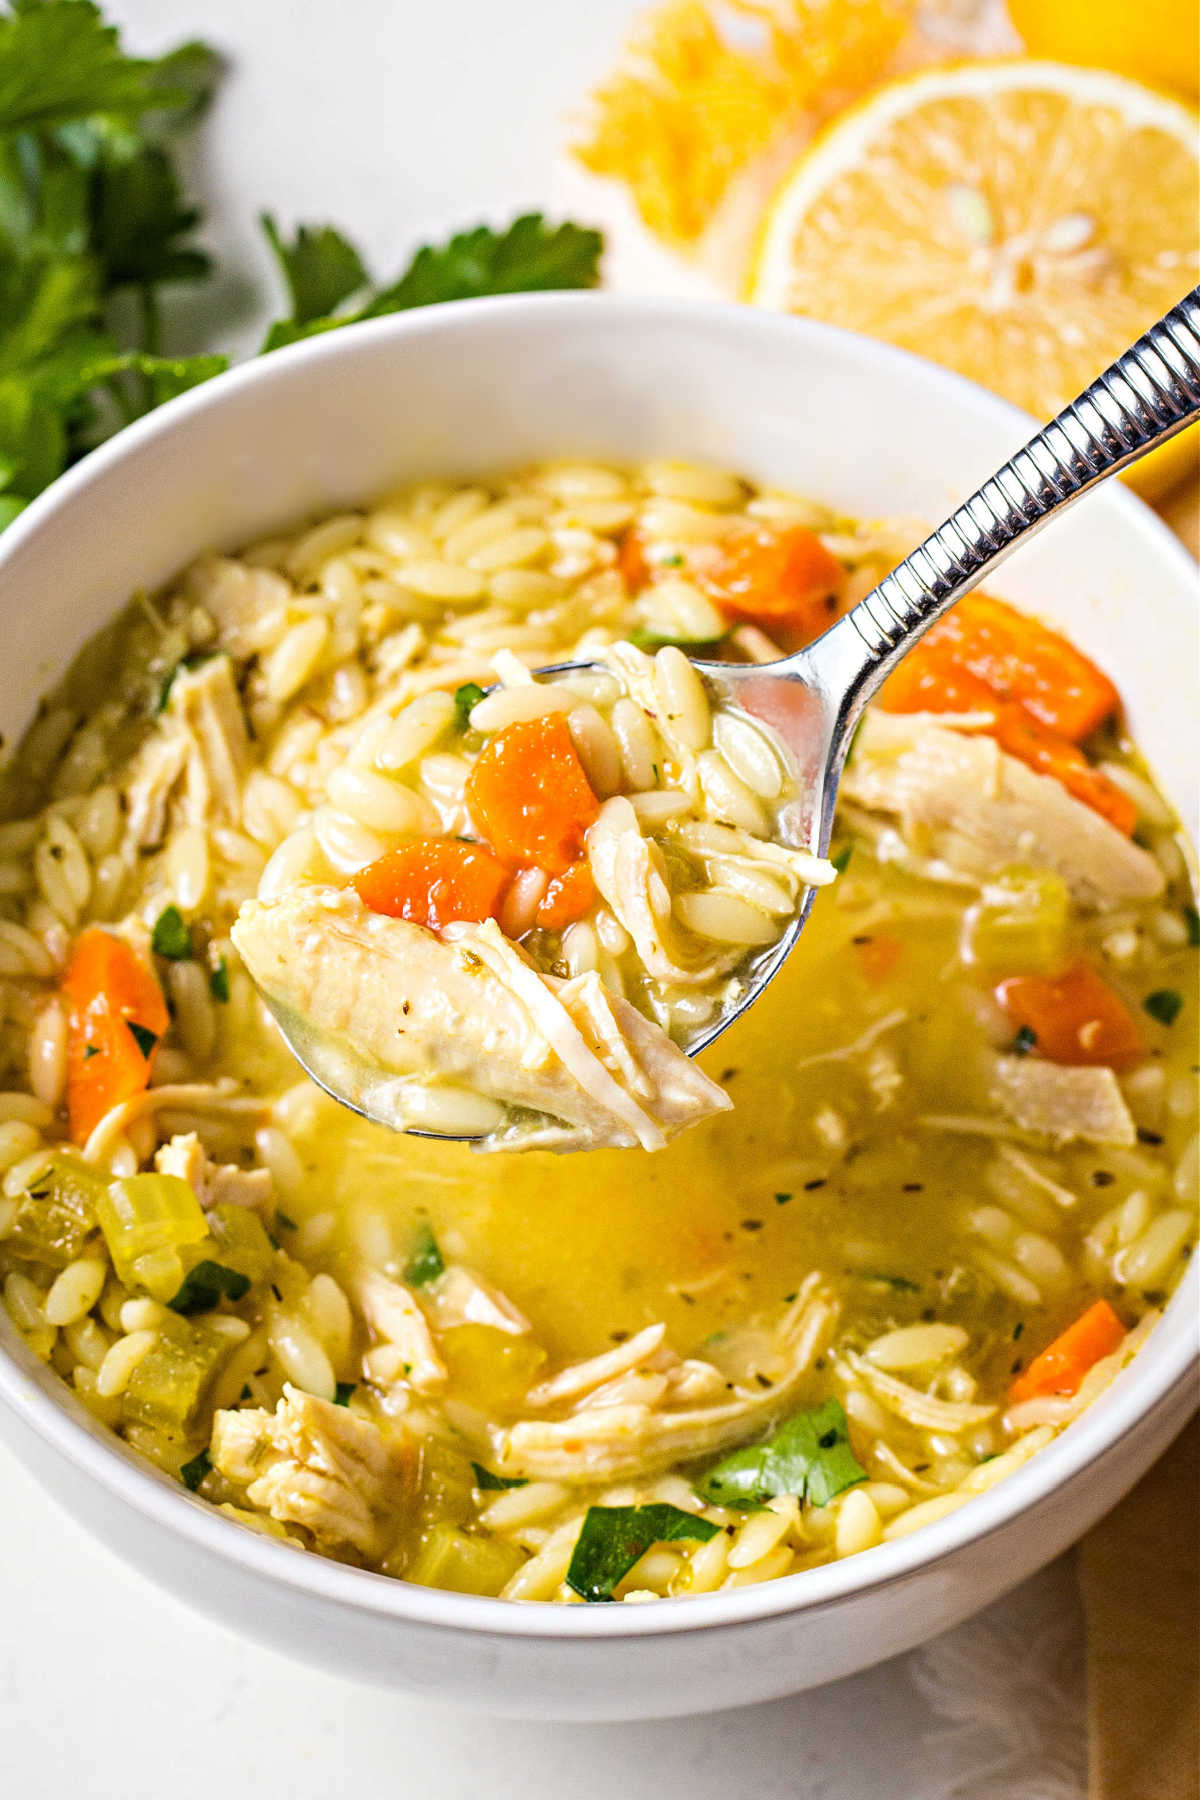 a spoonful of lemon chicken orzo soup coming out of a white bowl on a table.